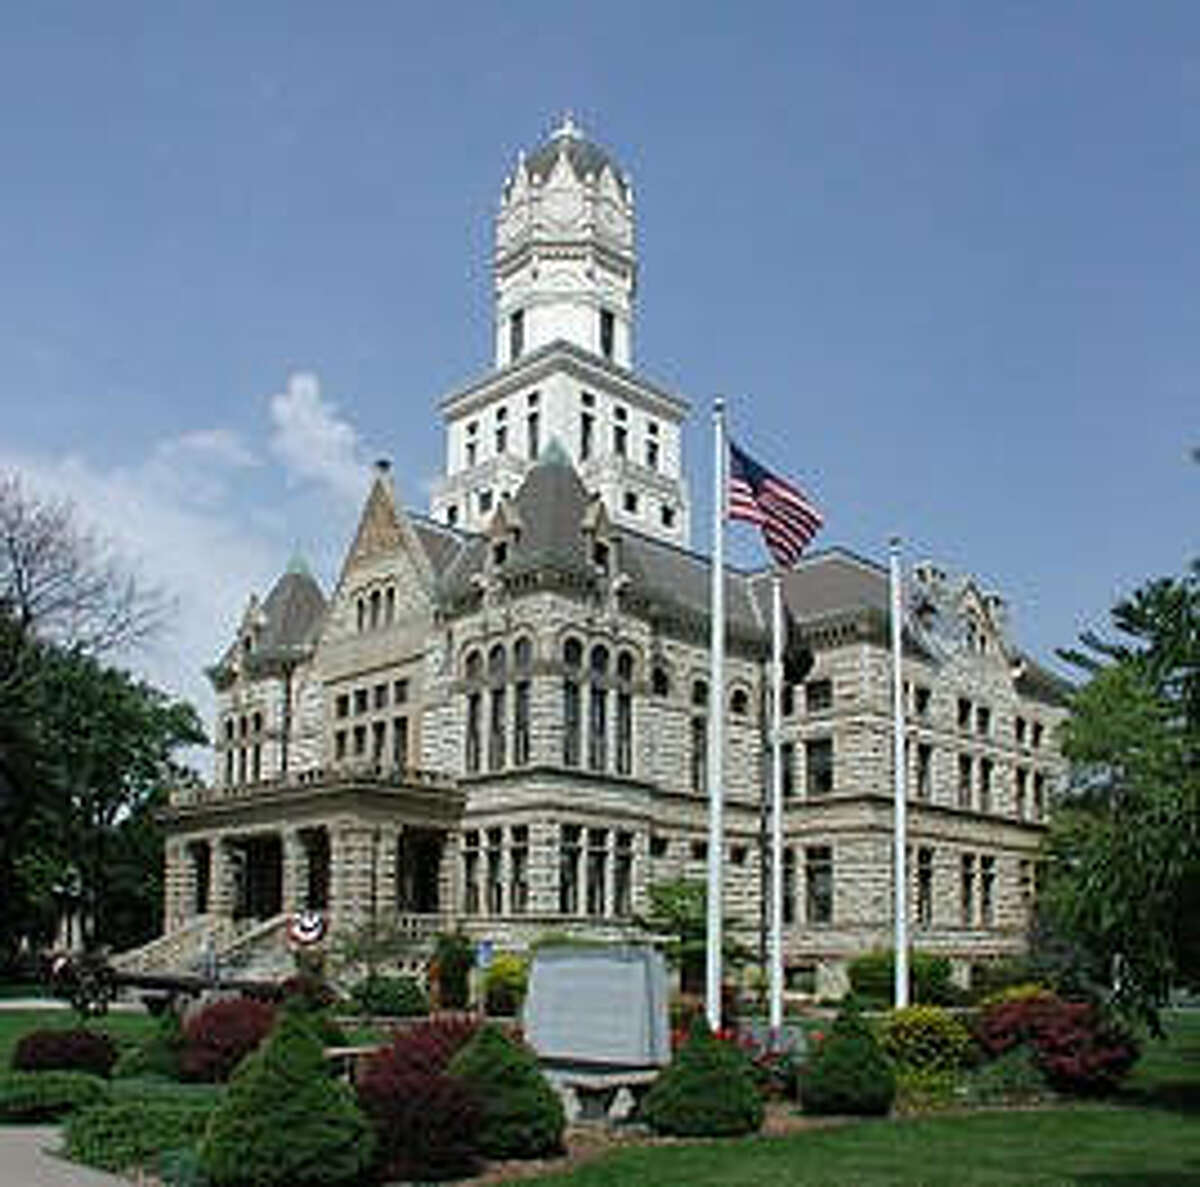 An Ice Cream Social will take place from 6-8 p.m. Monday, Aug. 23, at the Jersey County Courthouse, 201 W. Pearl St., Jerseyville, as a part of City Center Week.